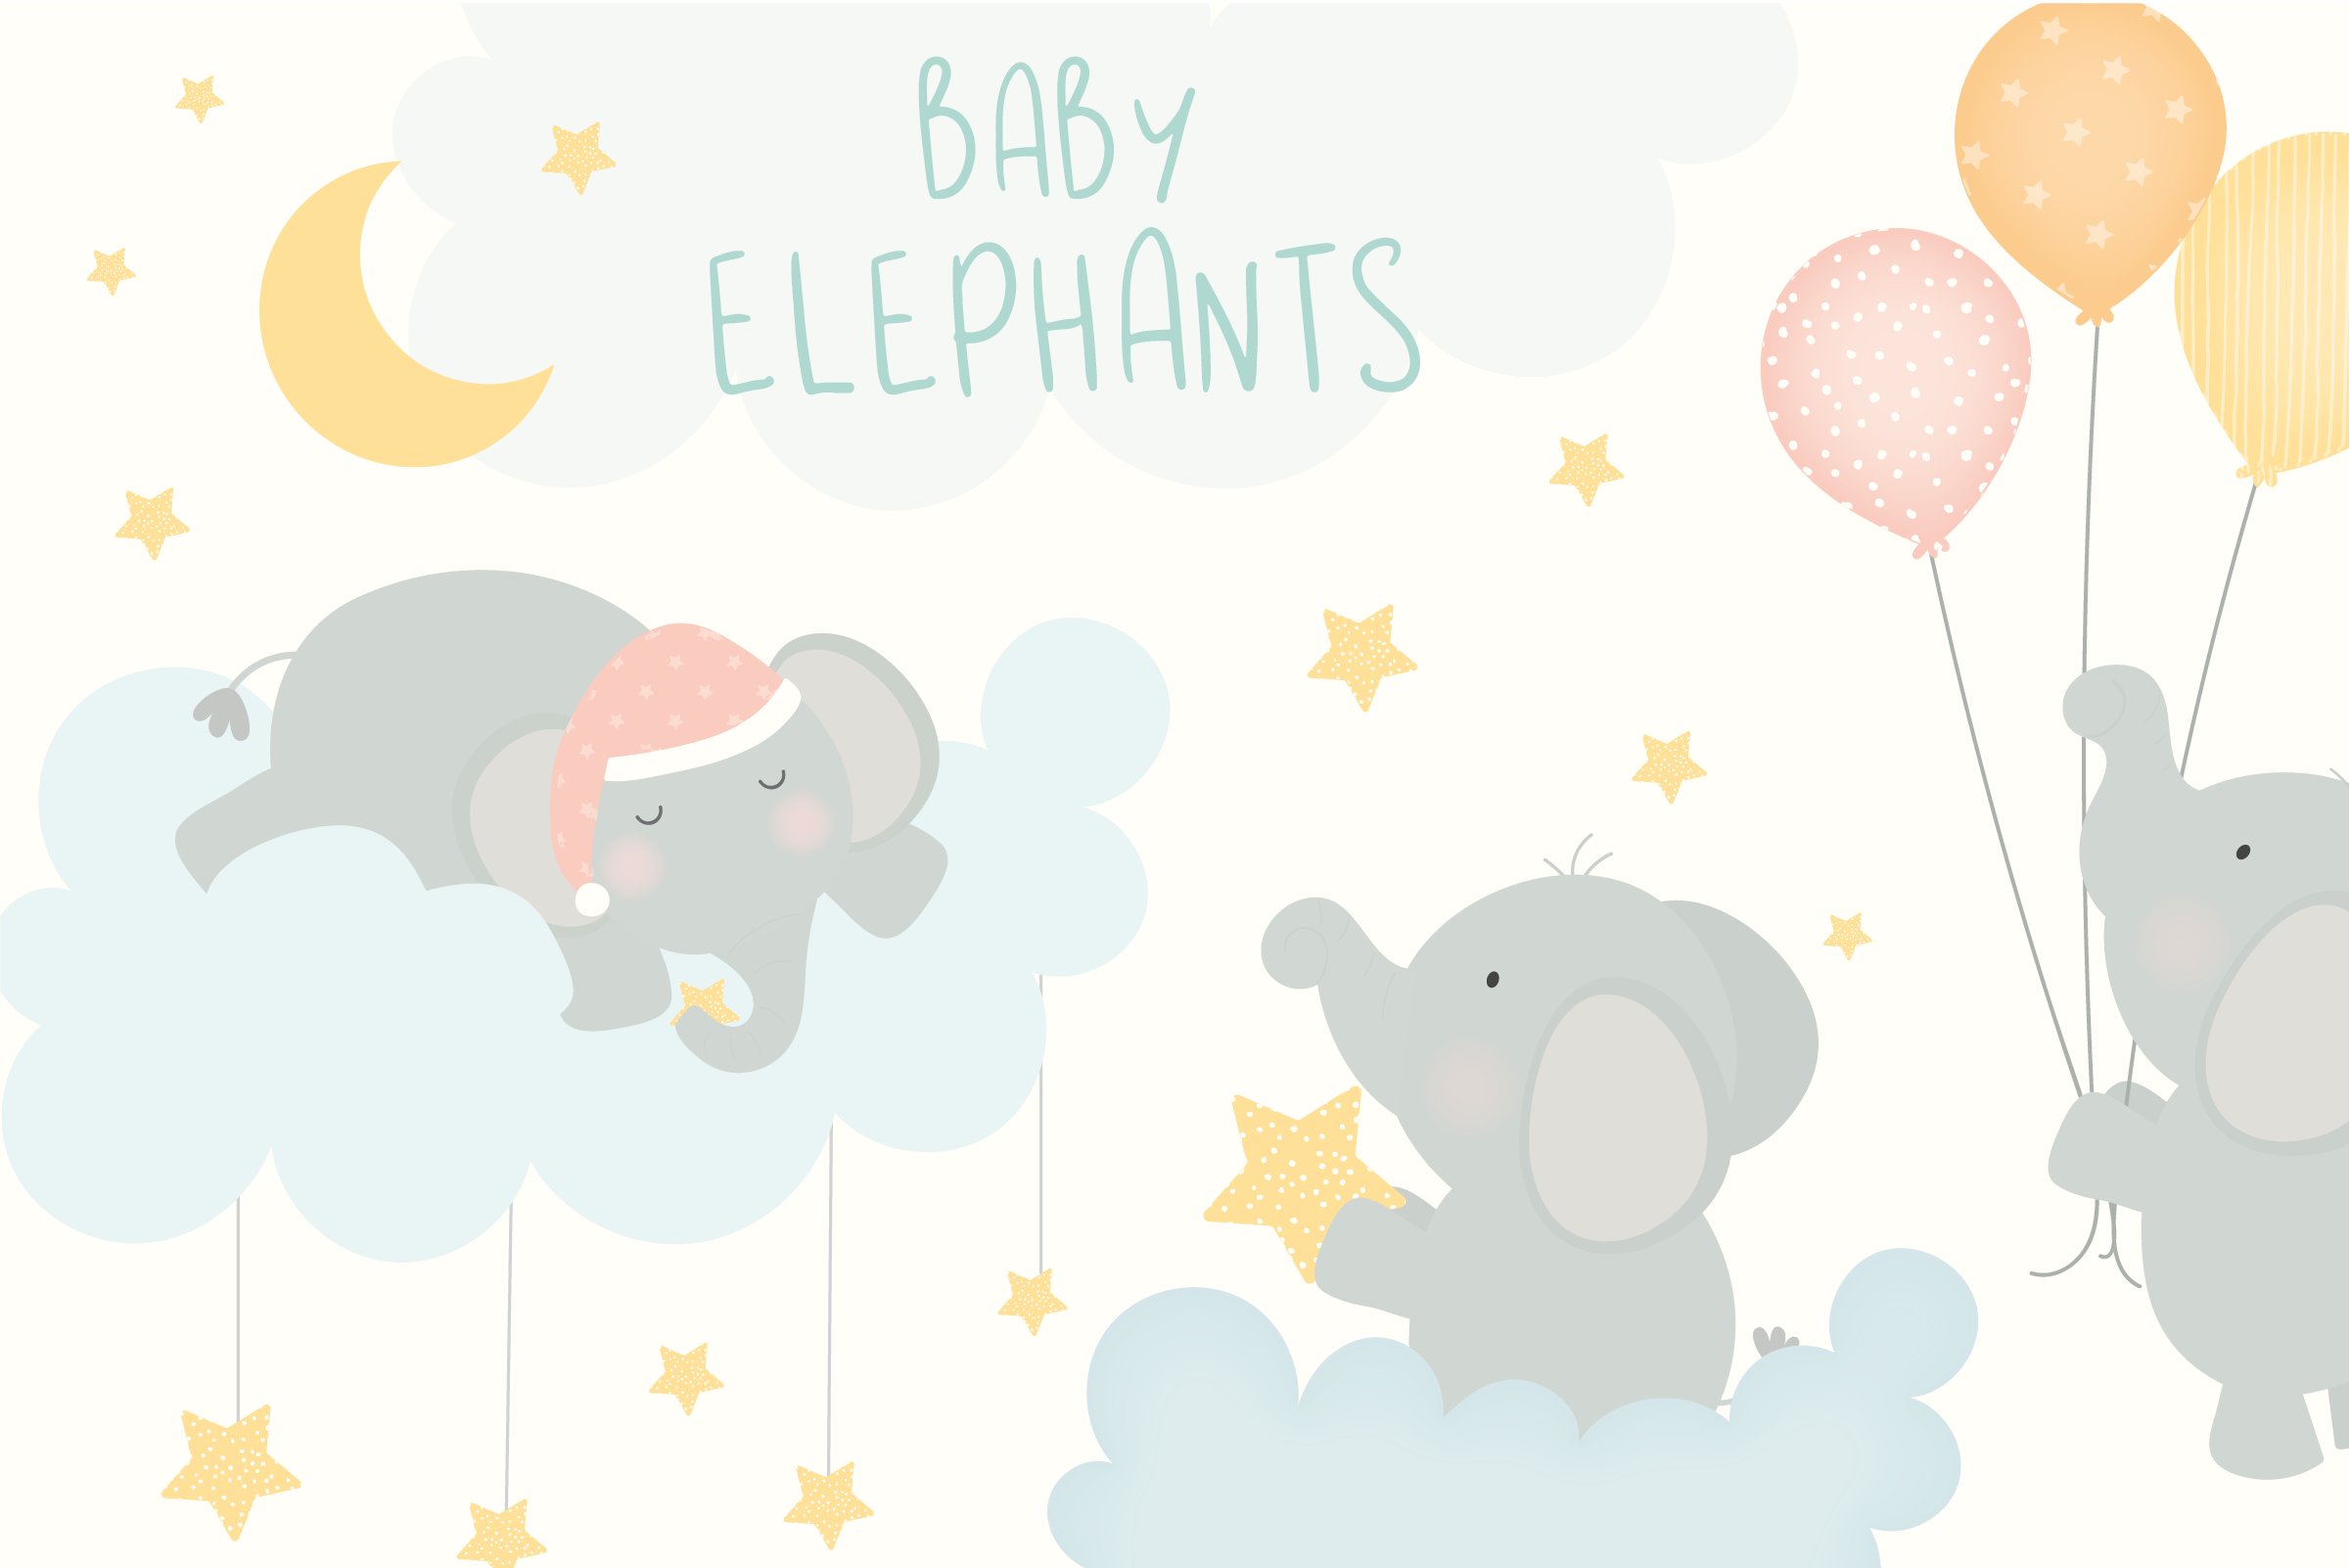 Download Free Baby Elephants Clipart Graphic By Poppymoondesign Creative Fabrica for Cricut Explore, Silhouette and other cutting machines.